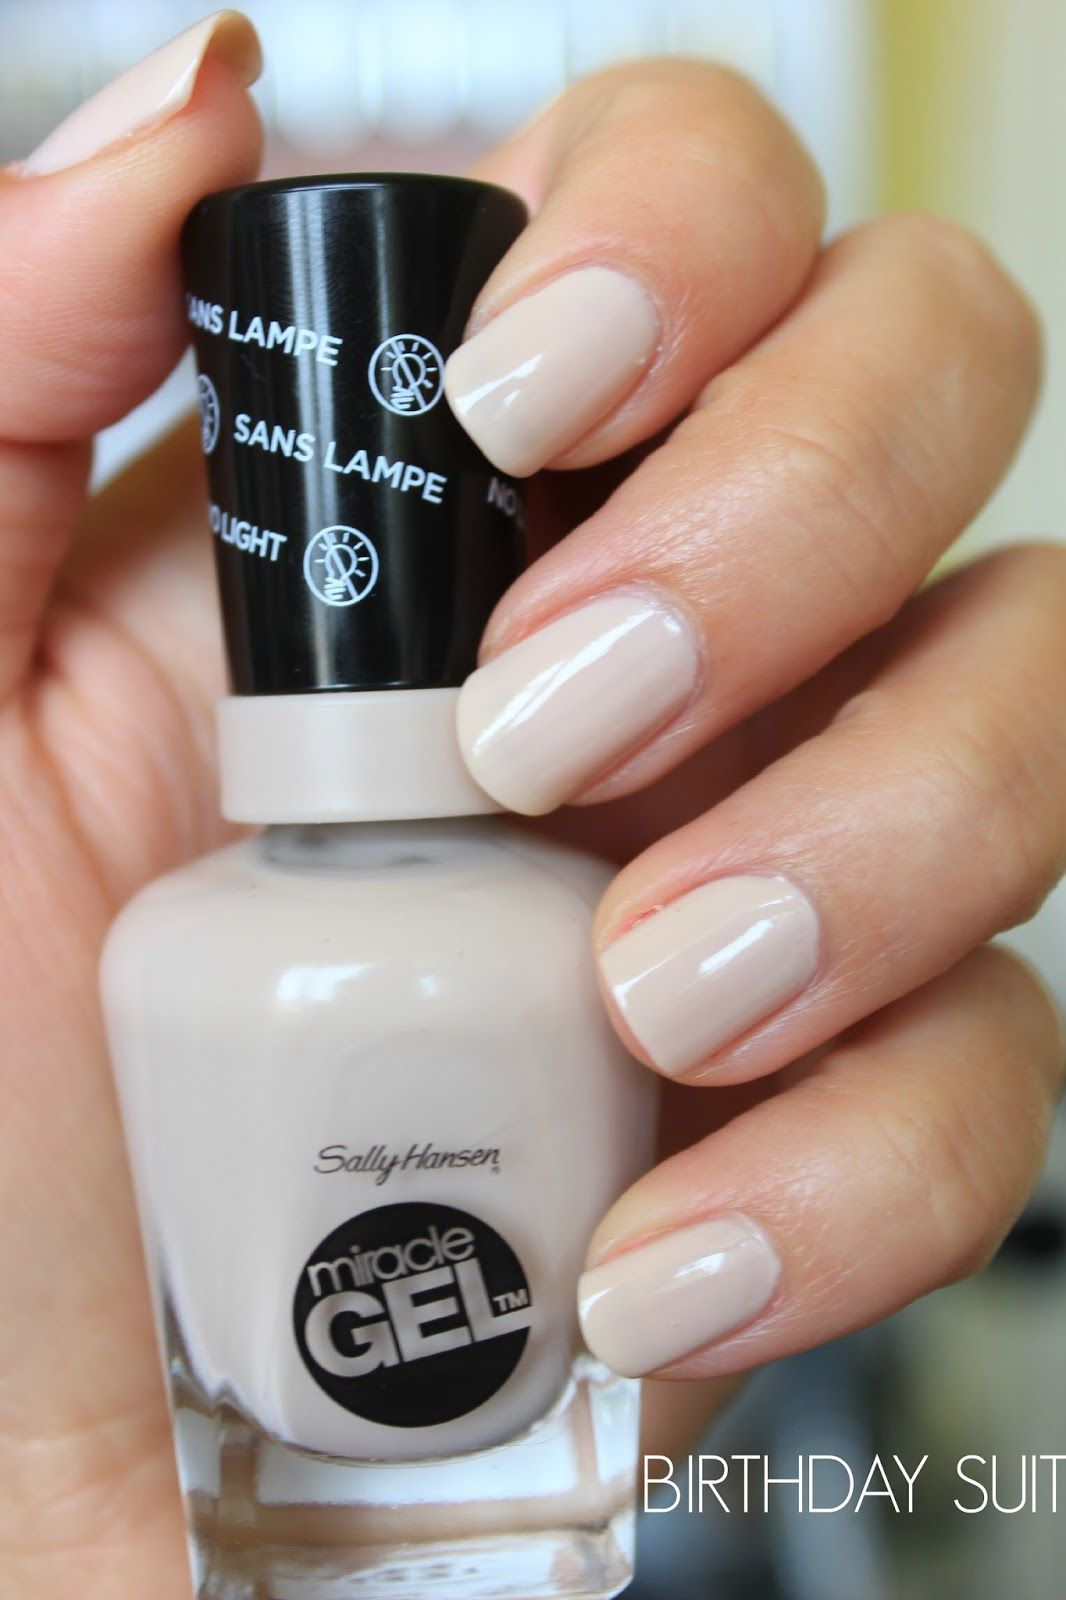 Sally Hansen Miracle Gel Nail Polish \'Birthday Suit\' Trying this ...